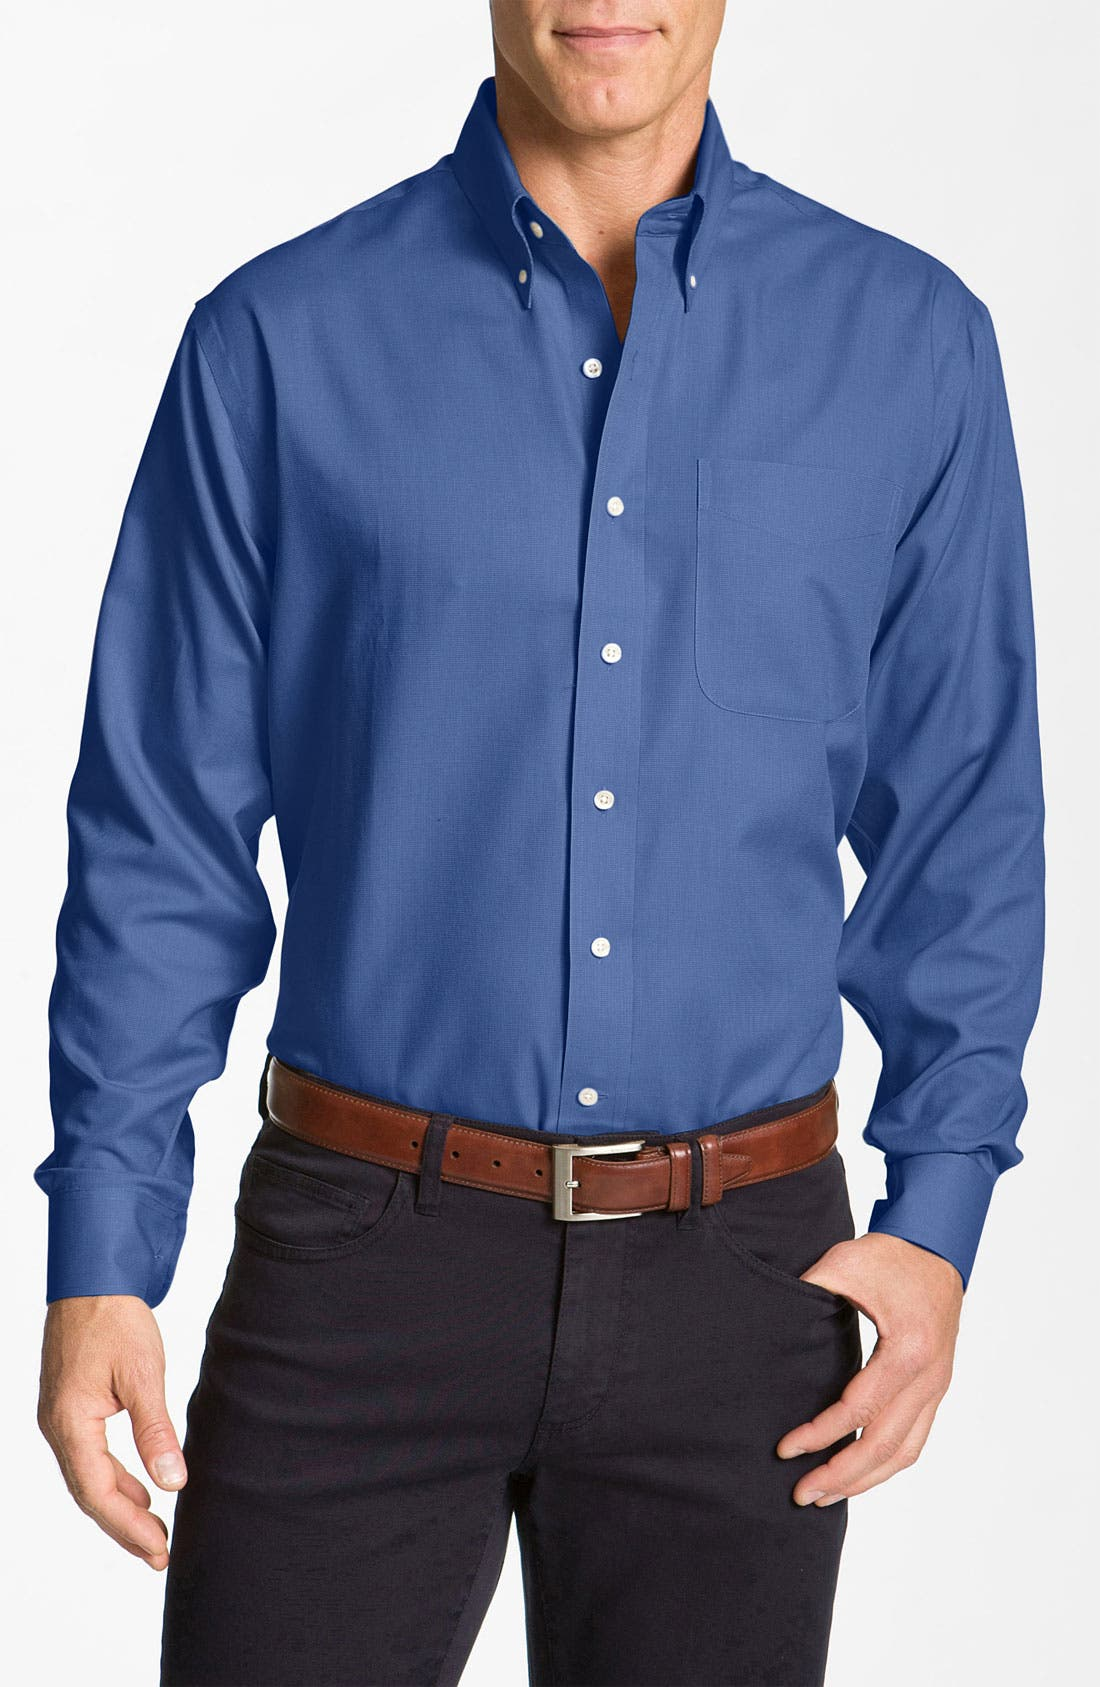 Nailshead - Epic Easy Care Classic Fit Sport Shirt,                         Main,                         color, FRENCH BLUE